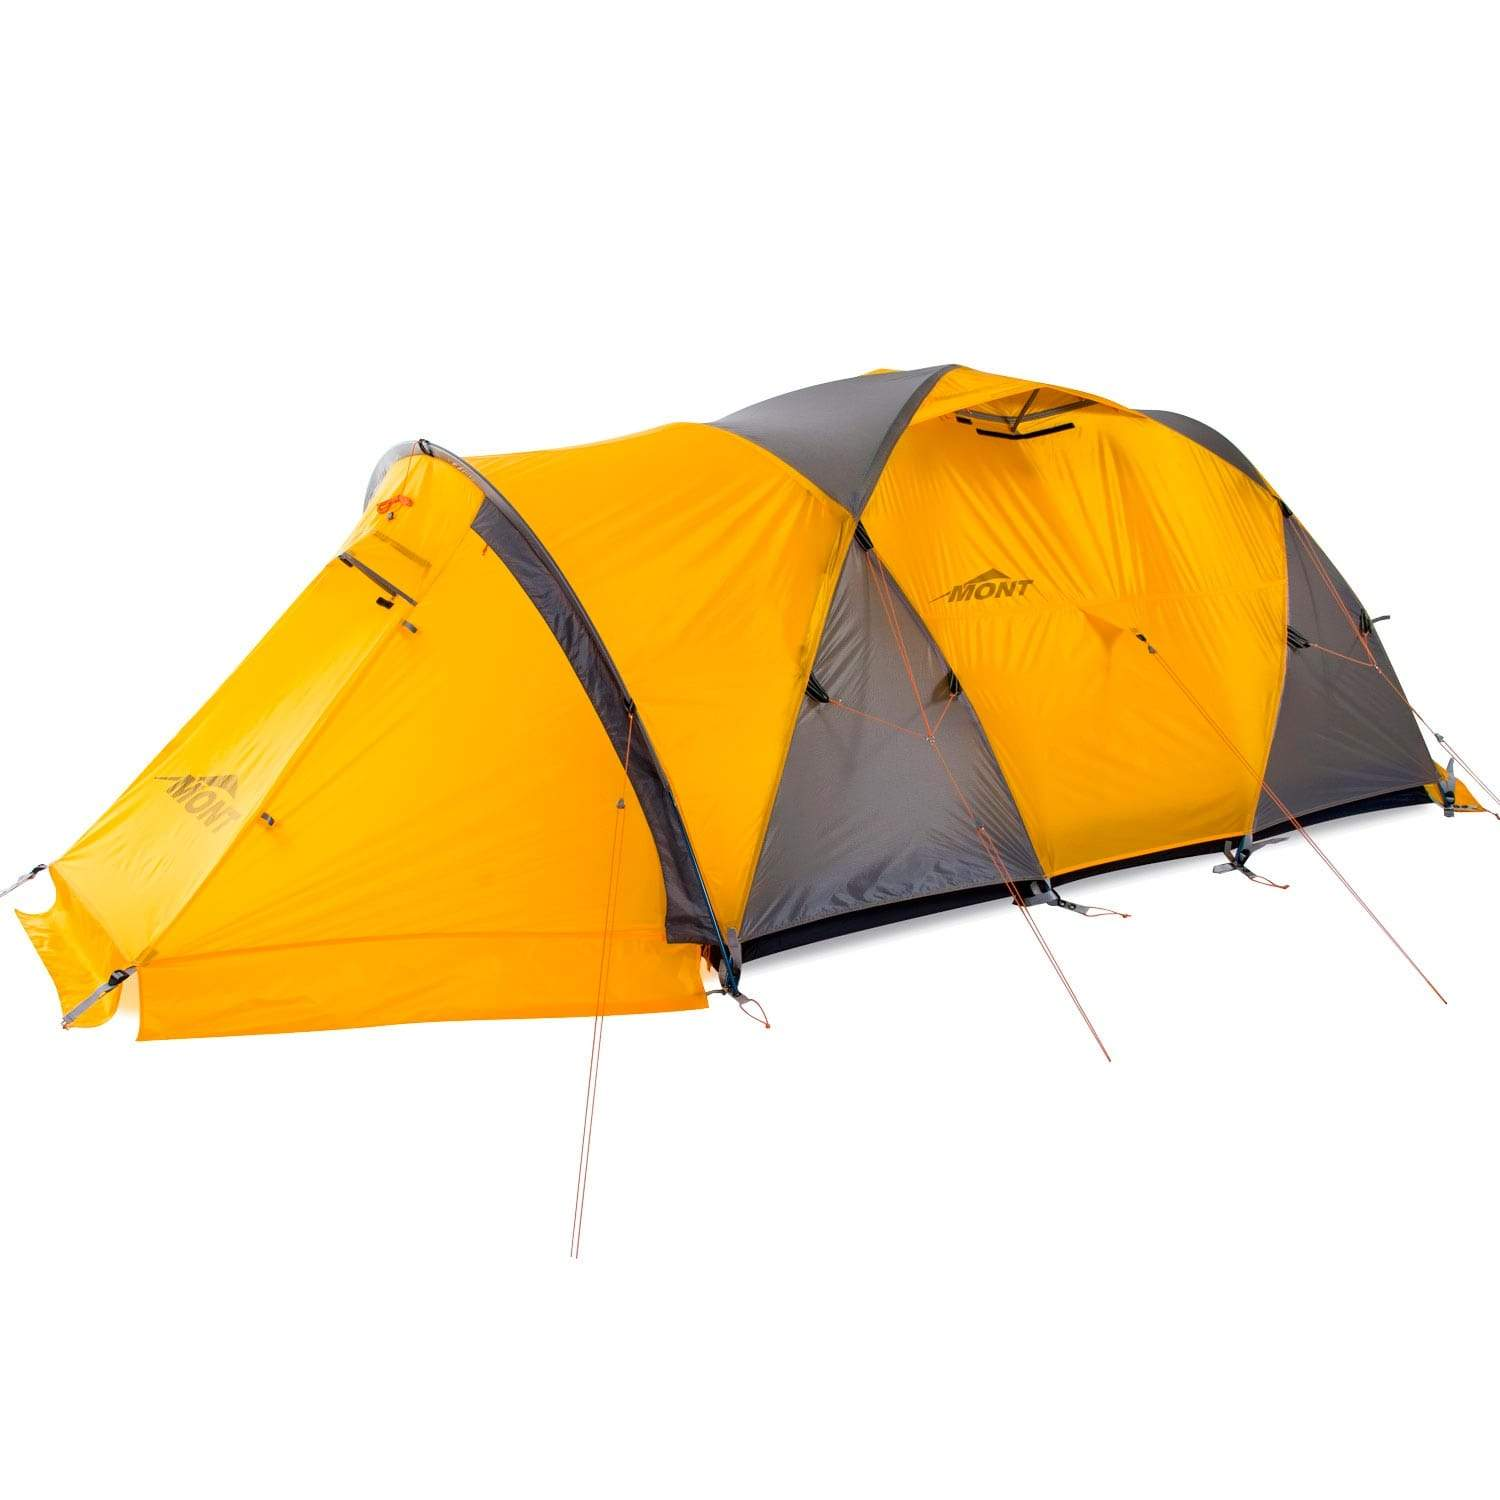 Mont Tents & Shelters Epoch Tent Gold Fusion/Charcoal 61.10.11